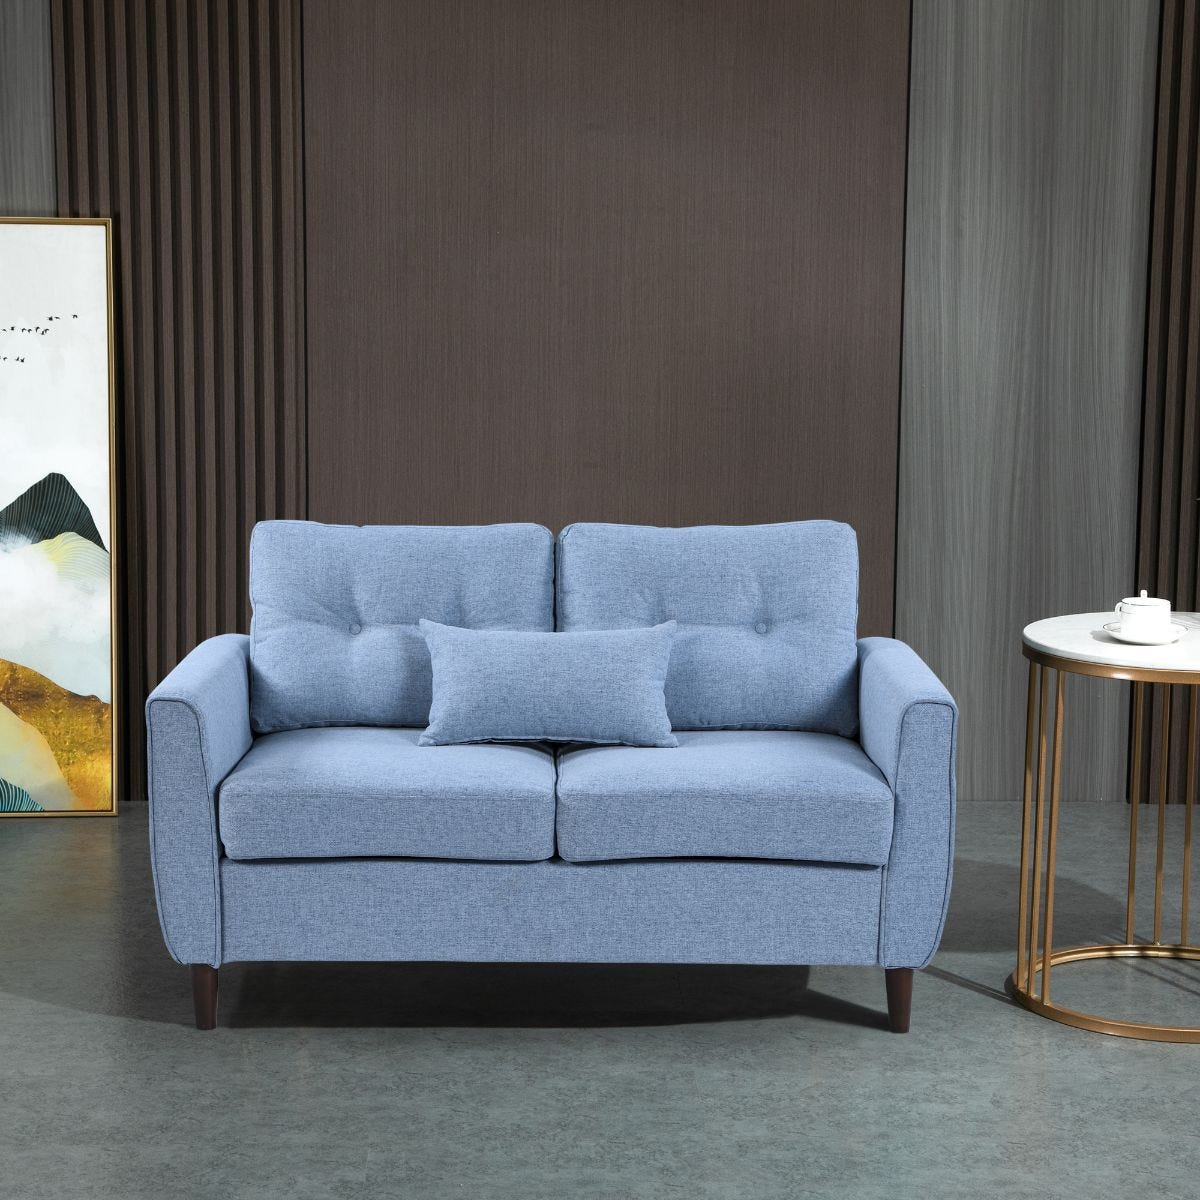 Two Seater Sofa Loveseat with Armrests Light Blue